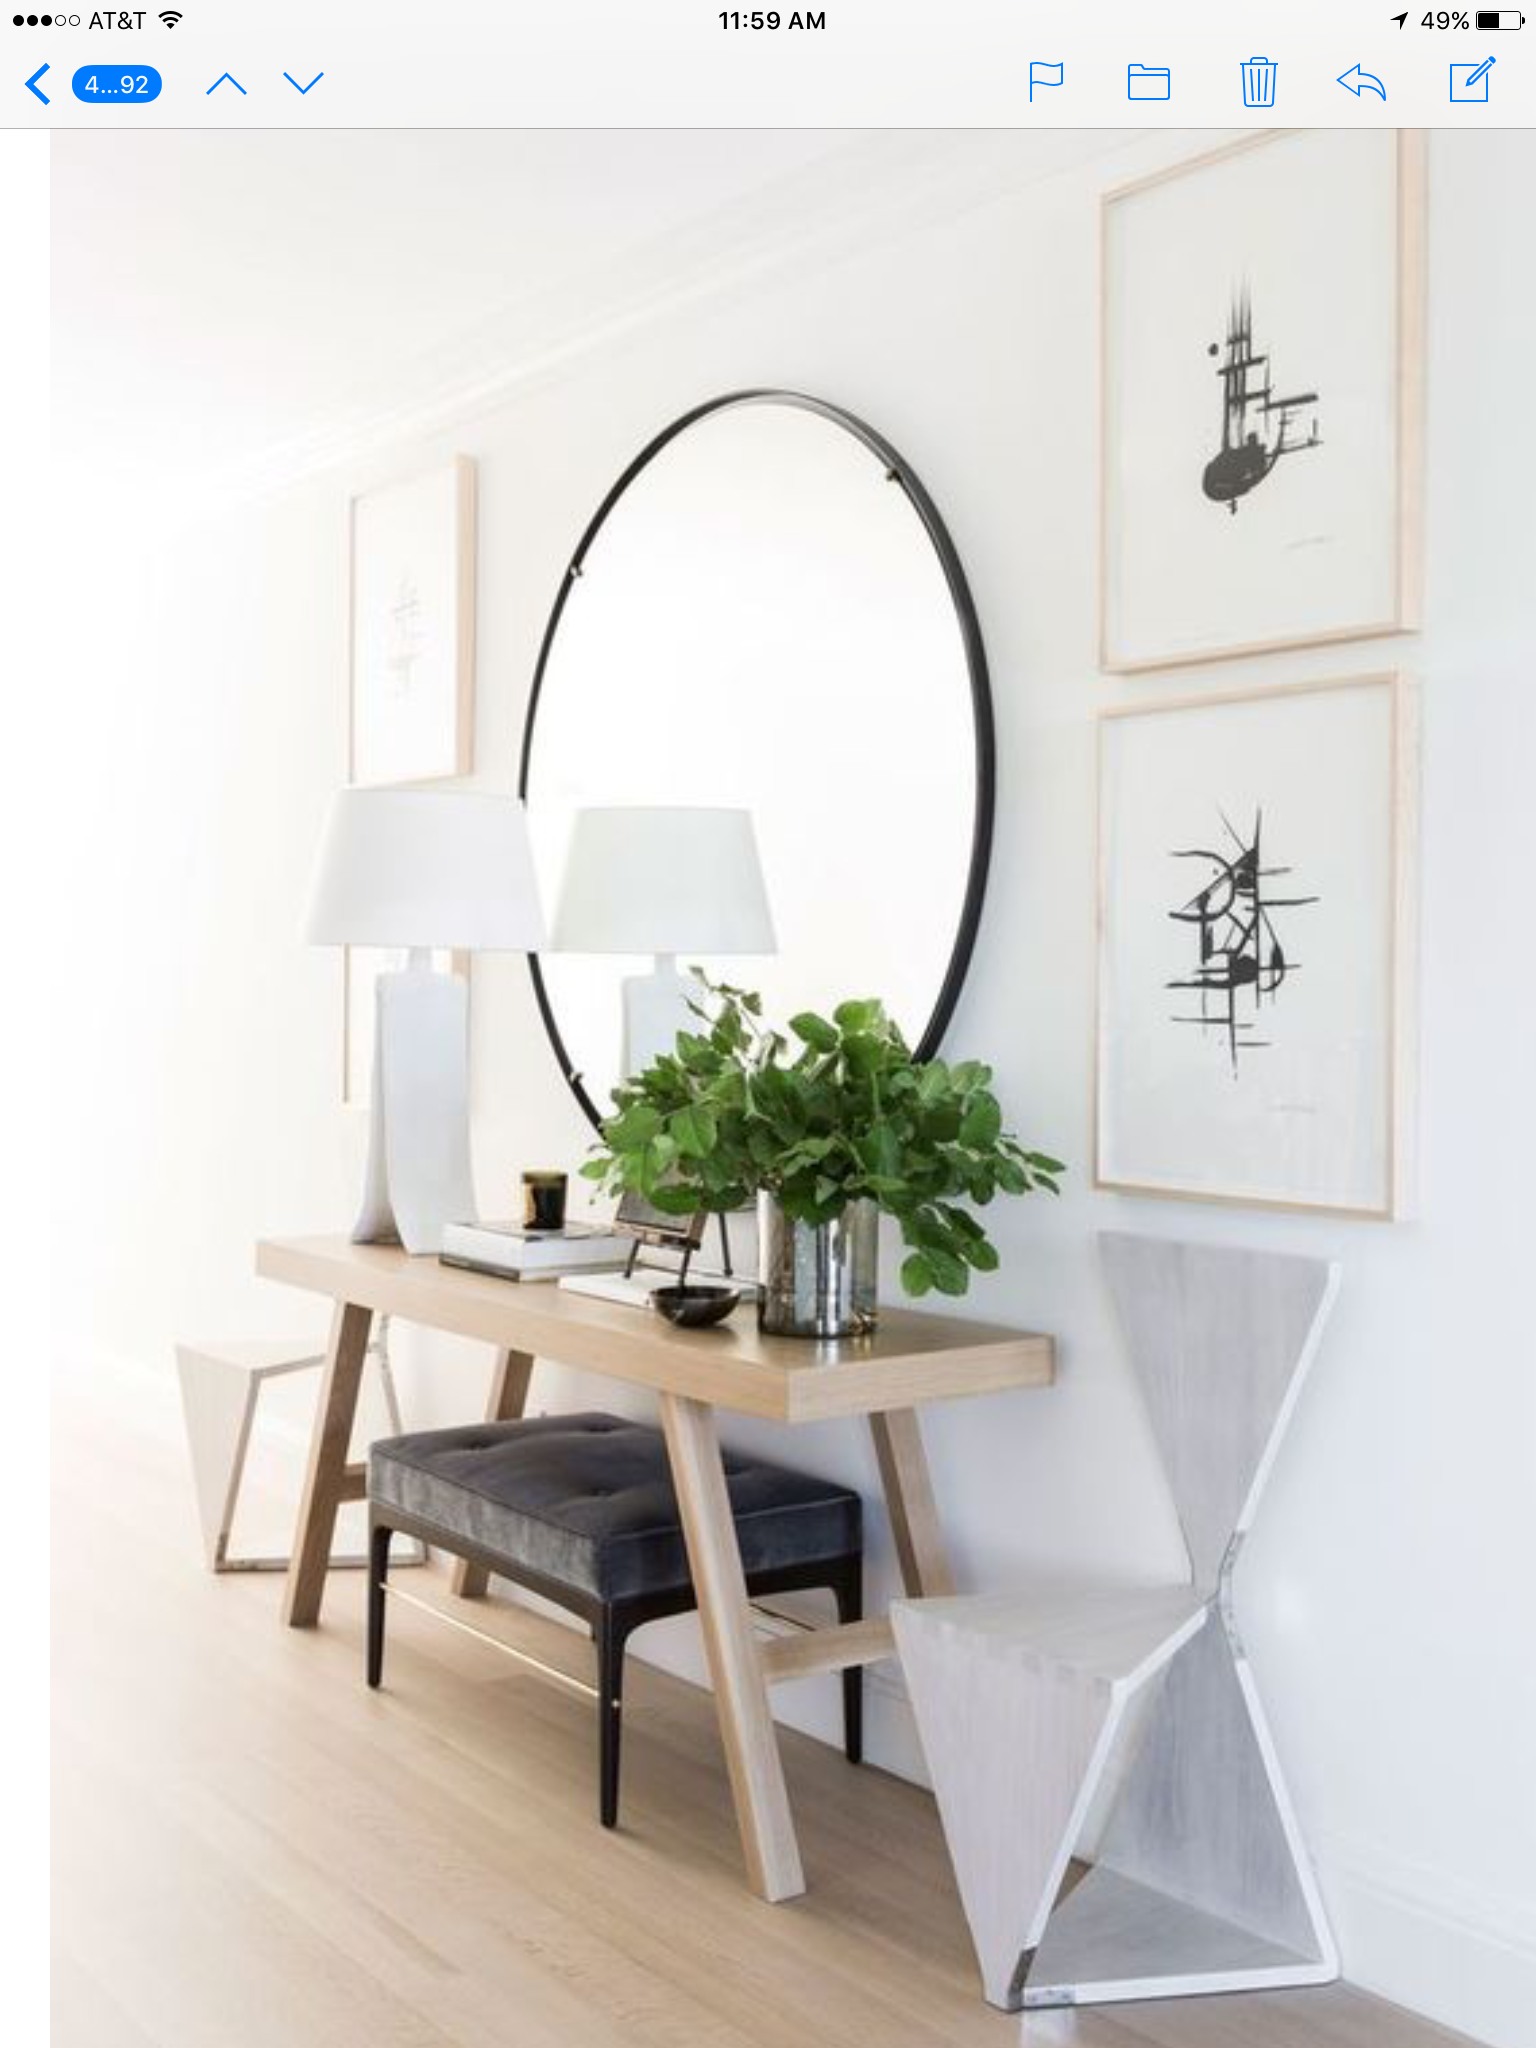 Minimalist Entryway With Oversized Round Mirror Over Light Toned Table From Architectural House Beautiful Magazine Interiors Hallway Designs Entry Table Decor